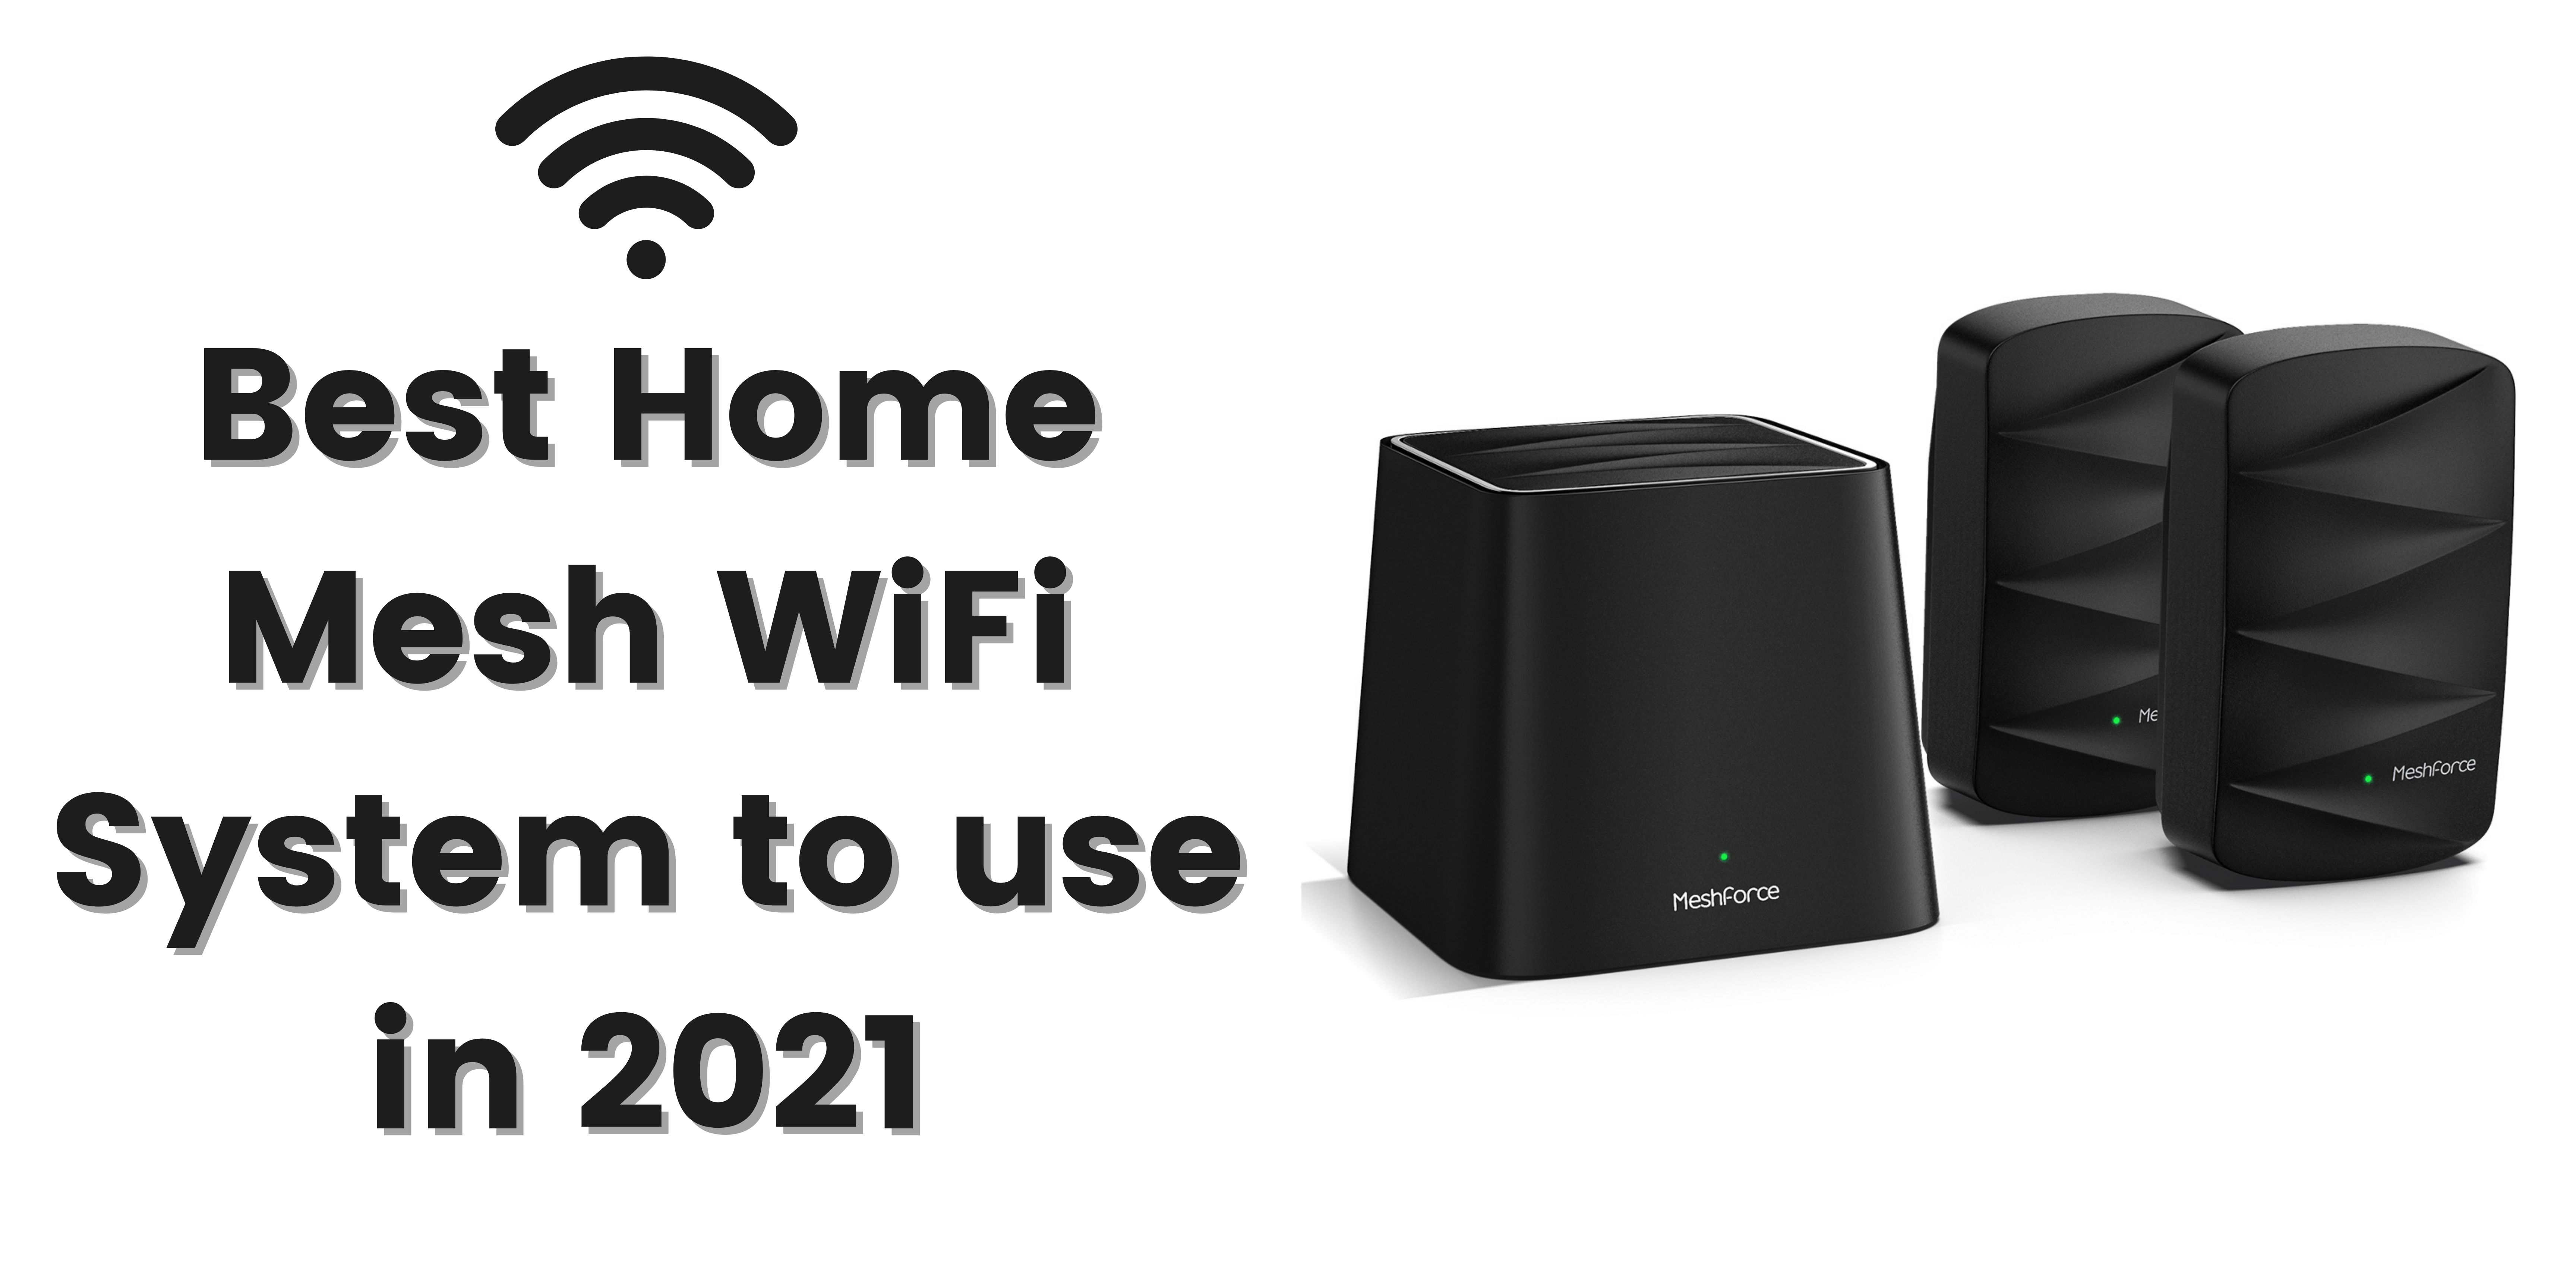 4 Best Home Mesh WiFi System to use in 2021